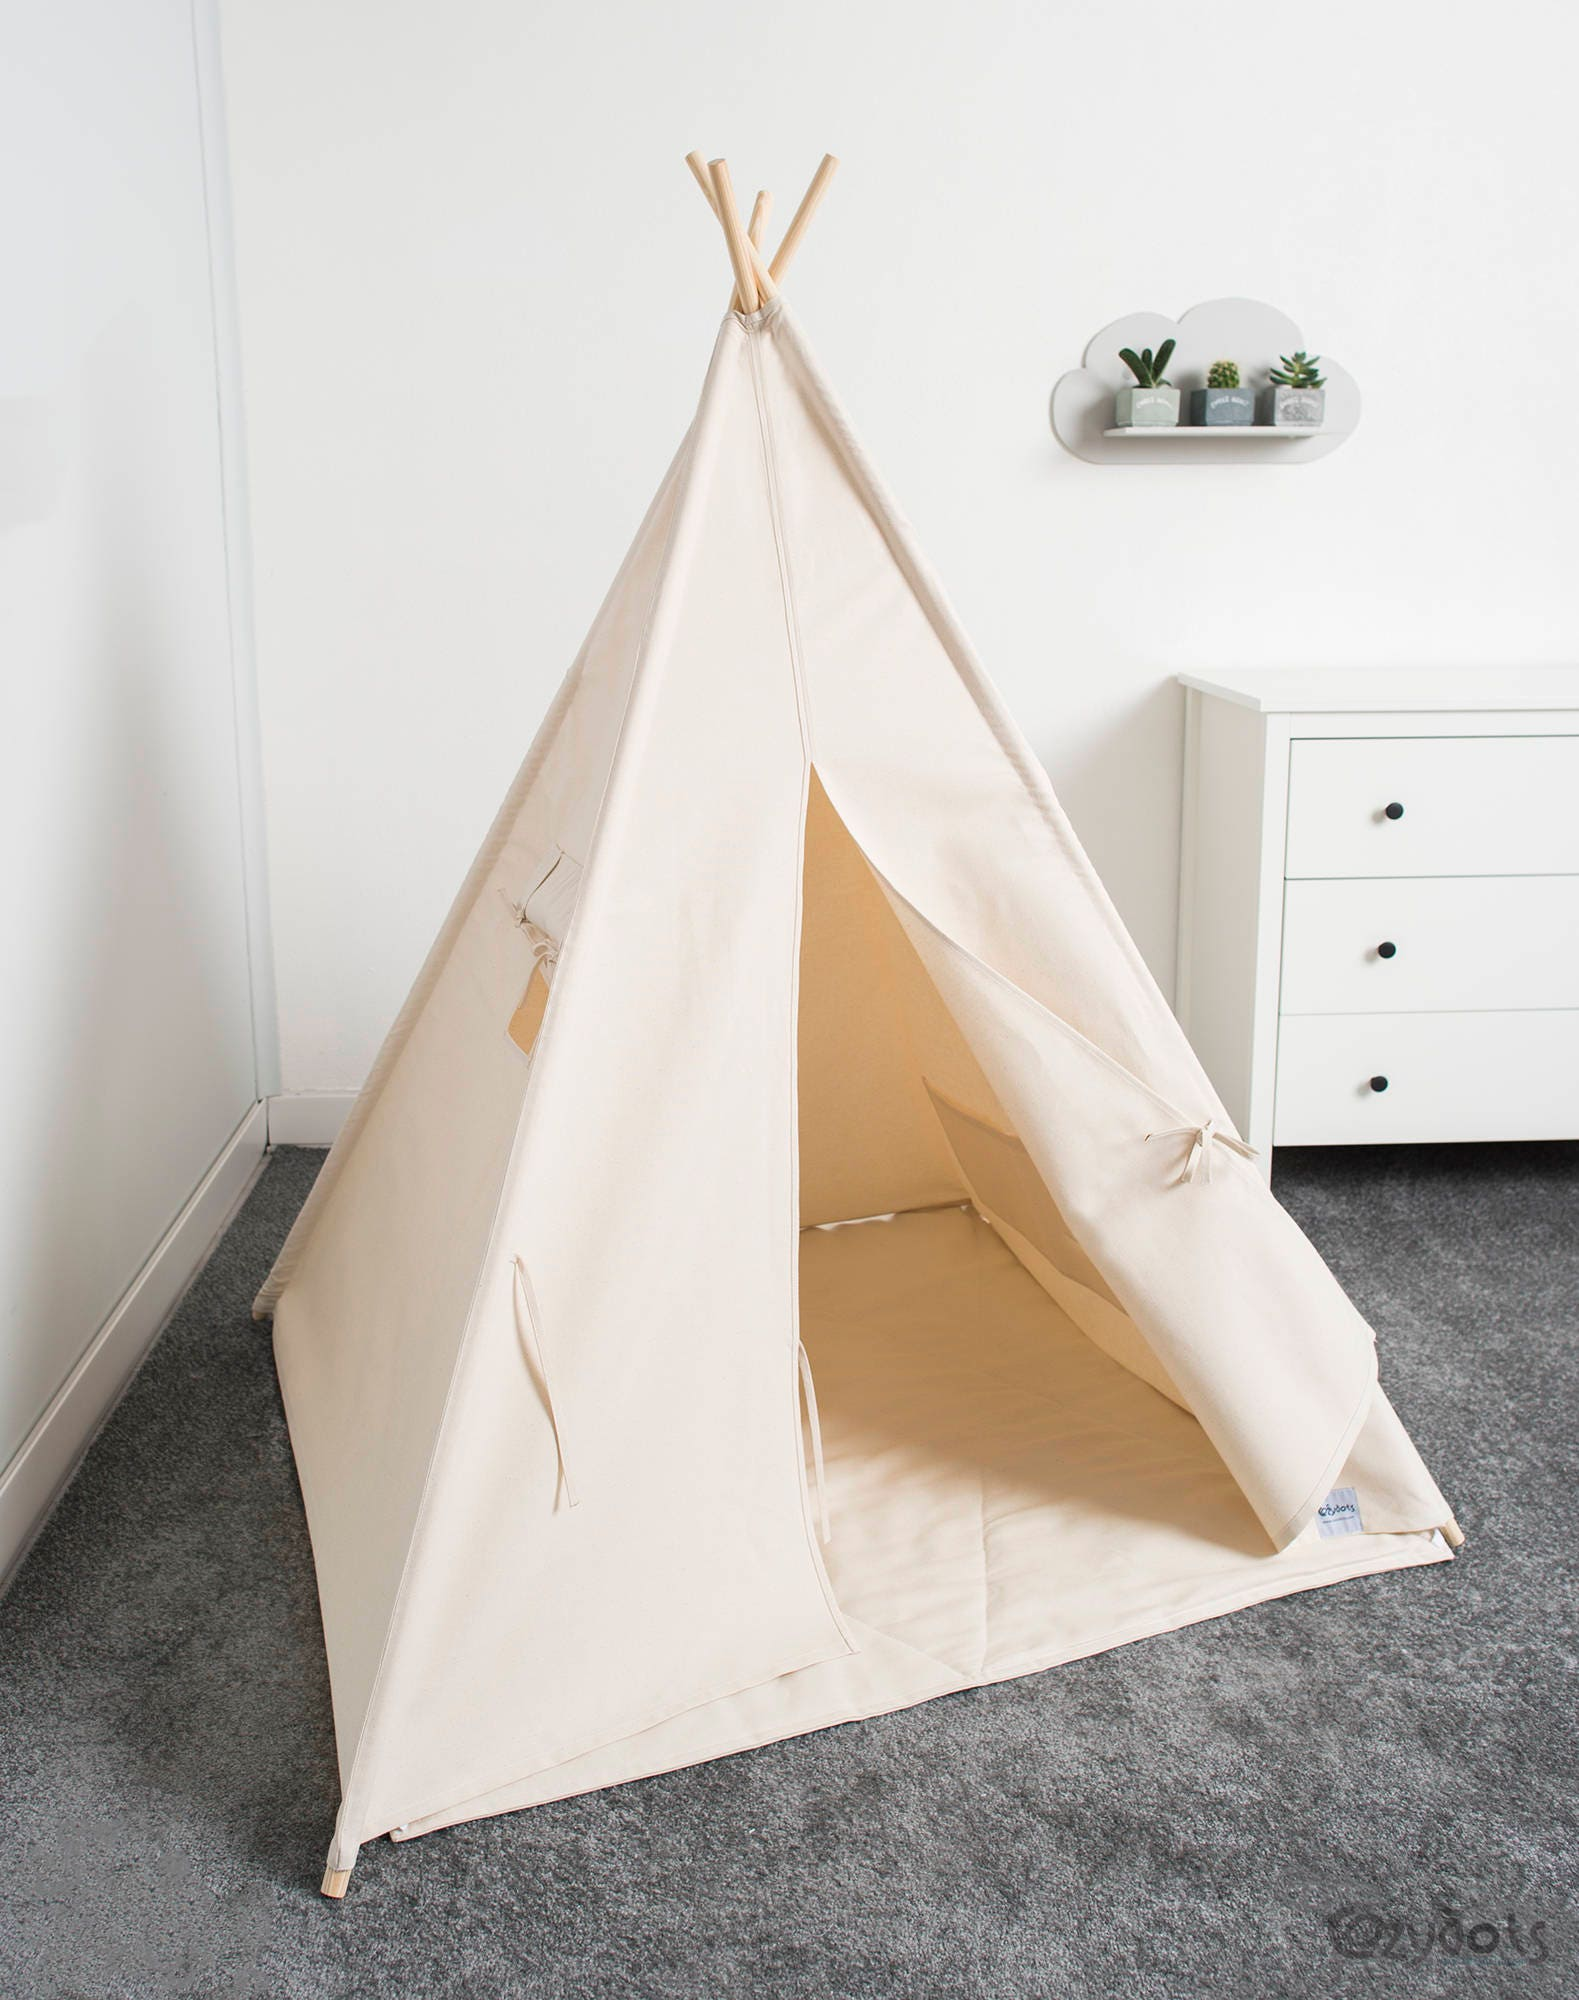 tipi indien les enfants jouent tente tipi tente indienne. Black Bedroom Furniture Sets. Home Design Ideas